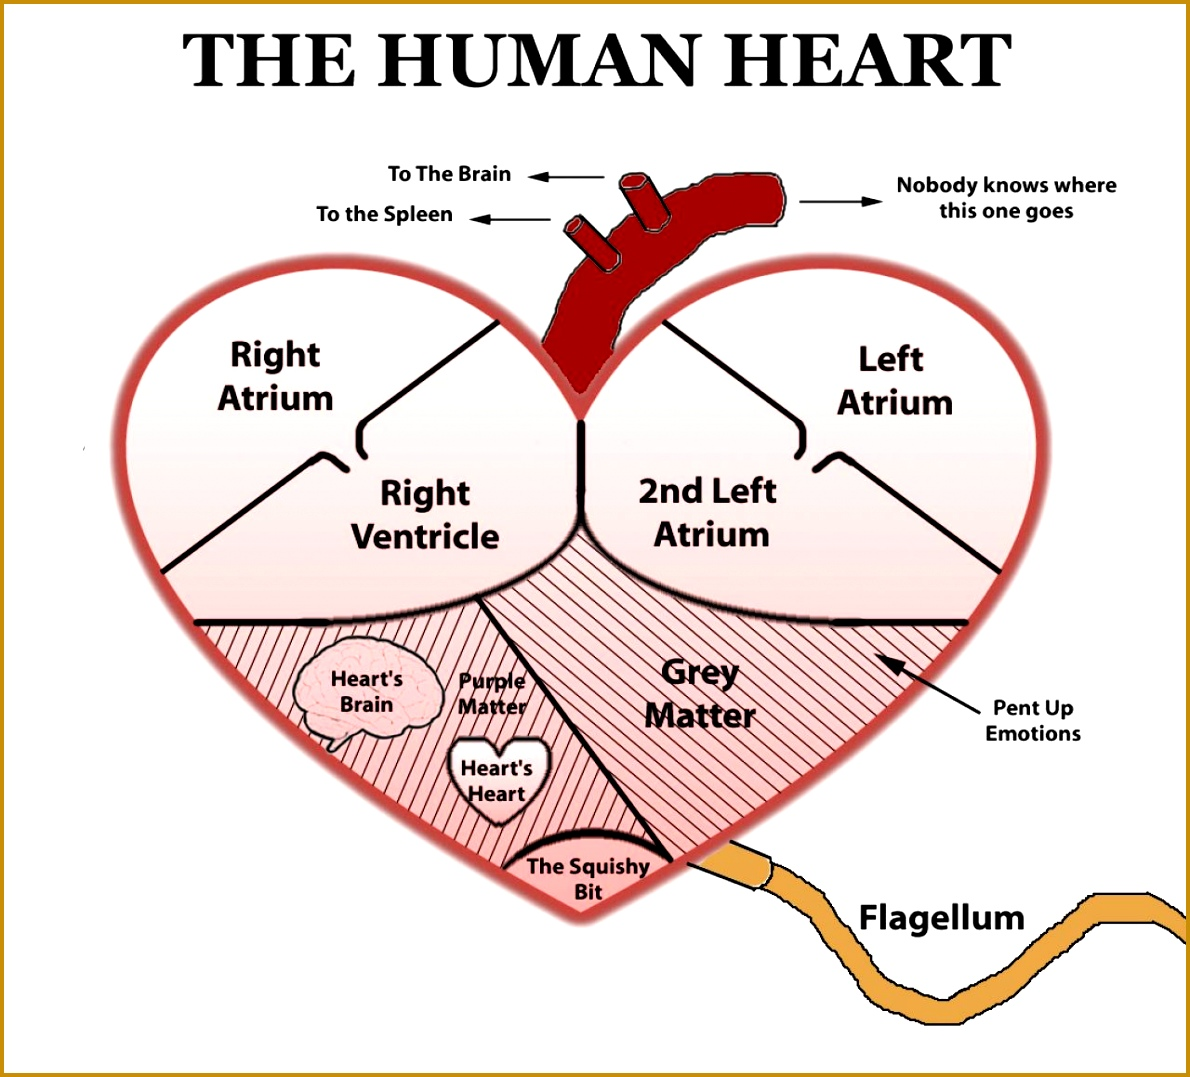 4 Printable Heart Diagram To Label